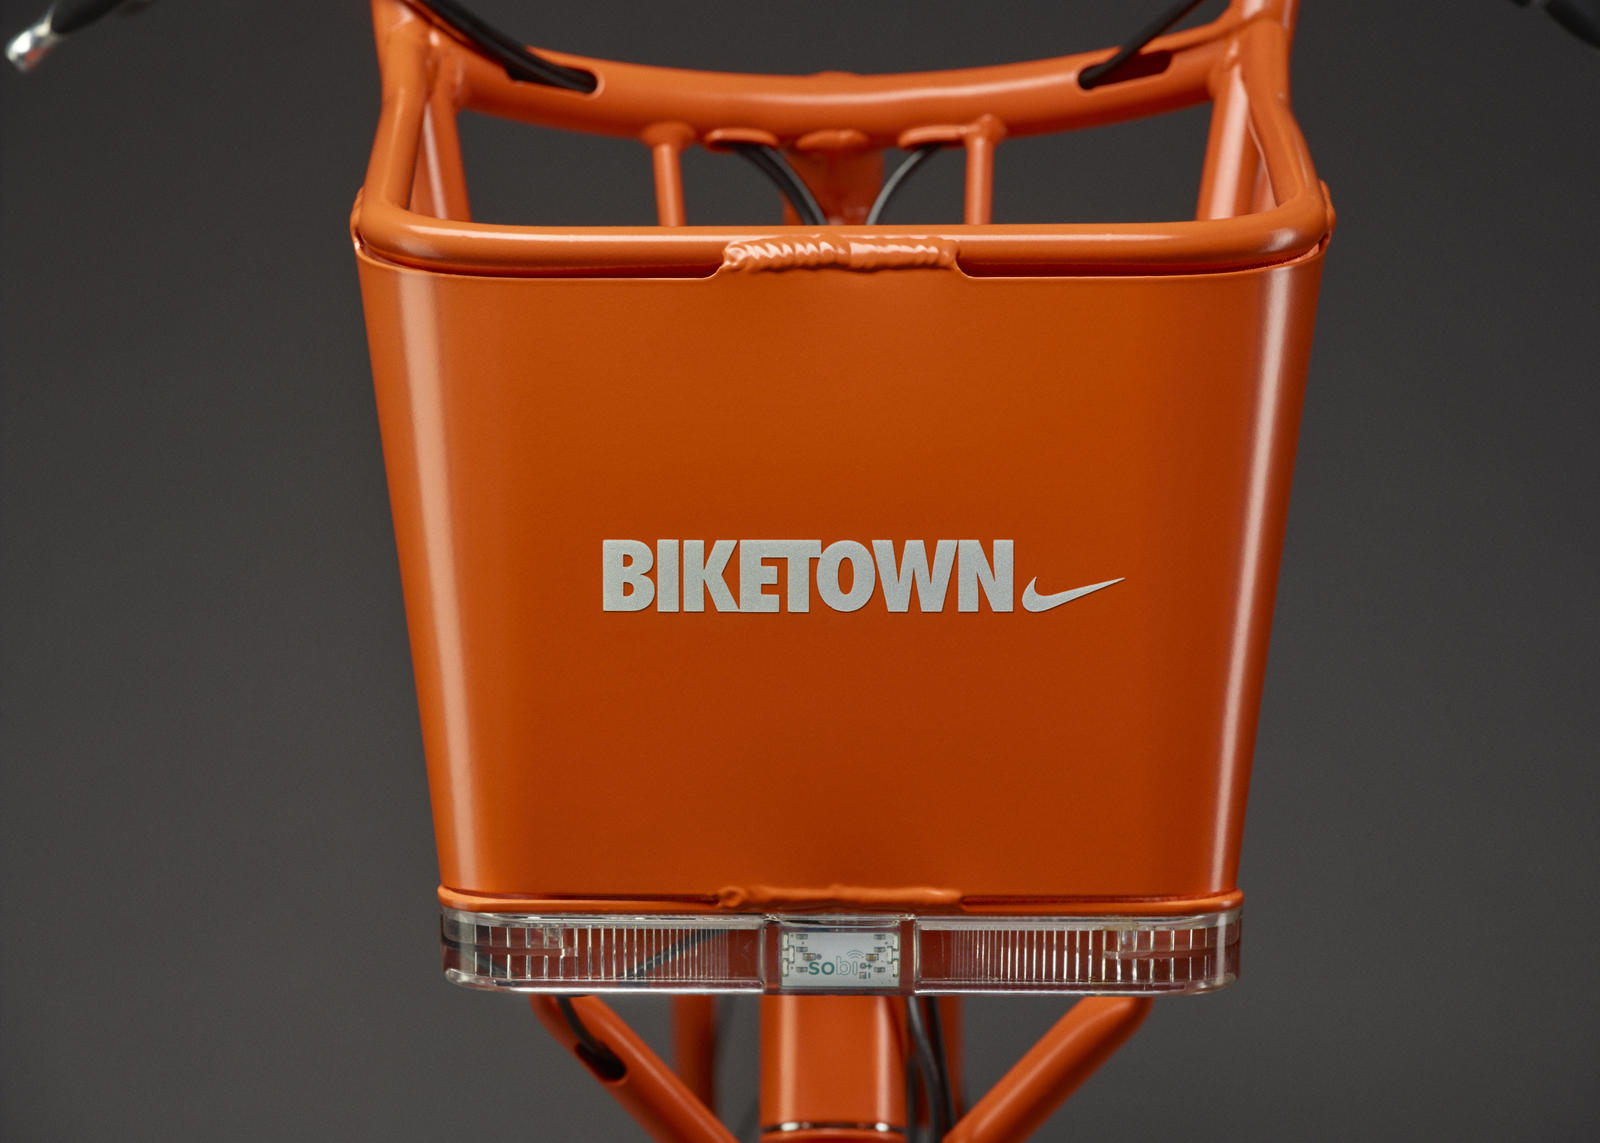 Nike biketown det 009 rectangle 1600